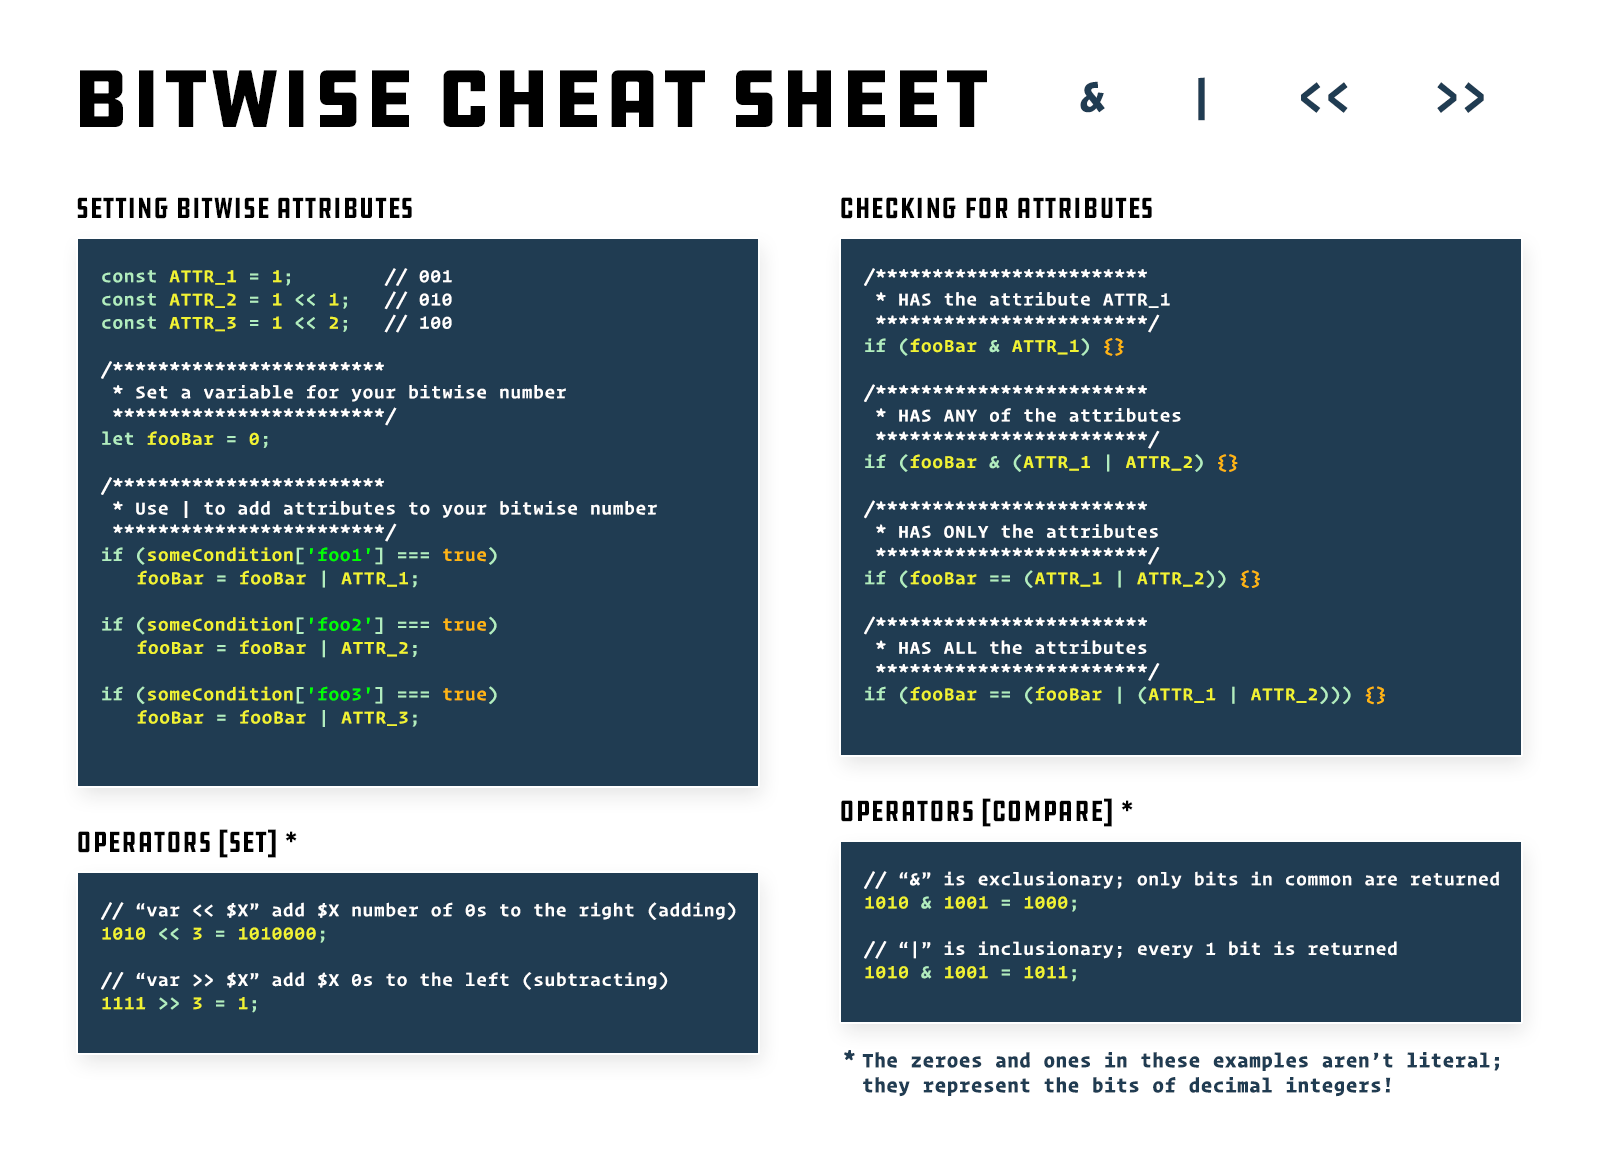 bitwise-cheat-sheet.png